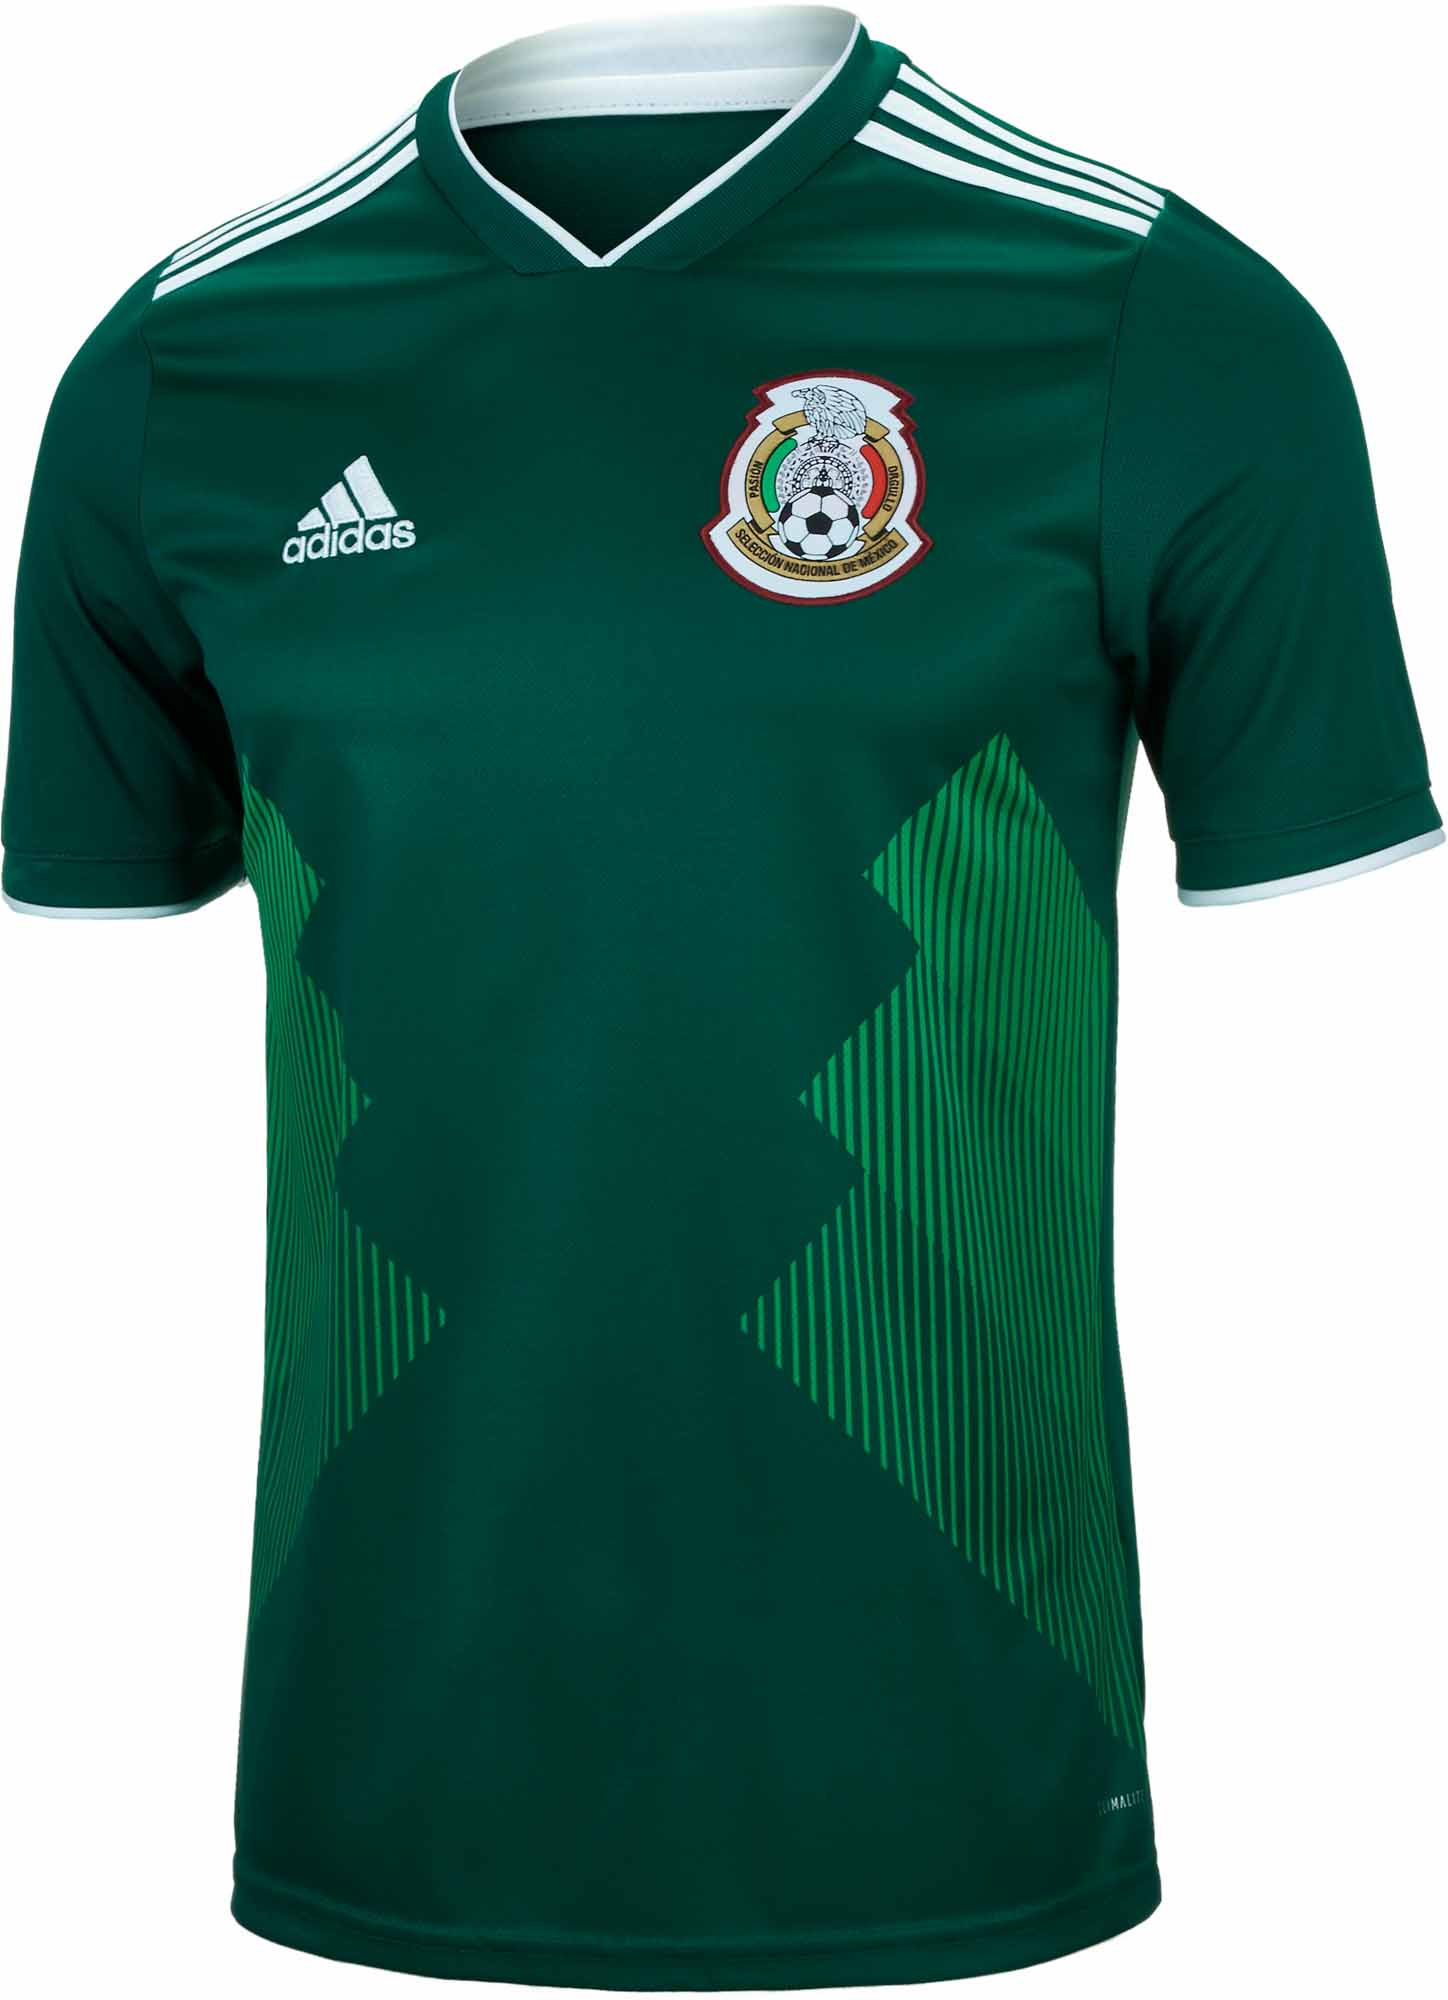 562c6578810dc adidas Kids Mexico Home Jersey 2018-19